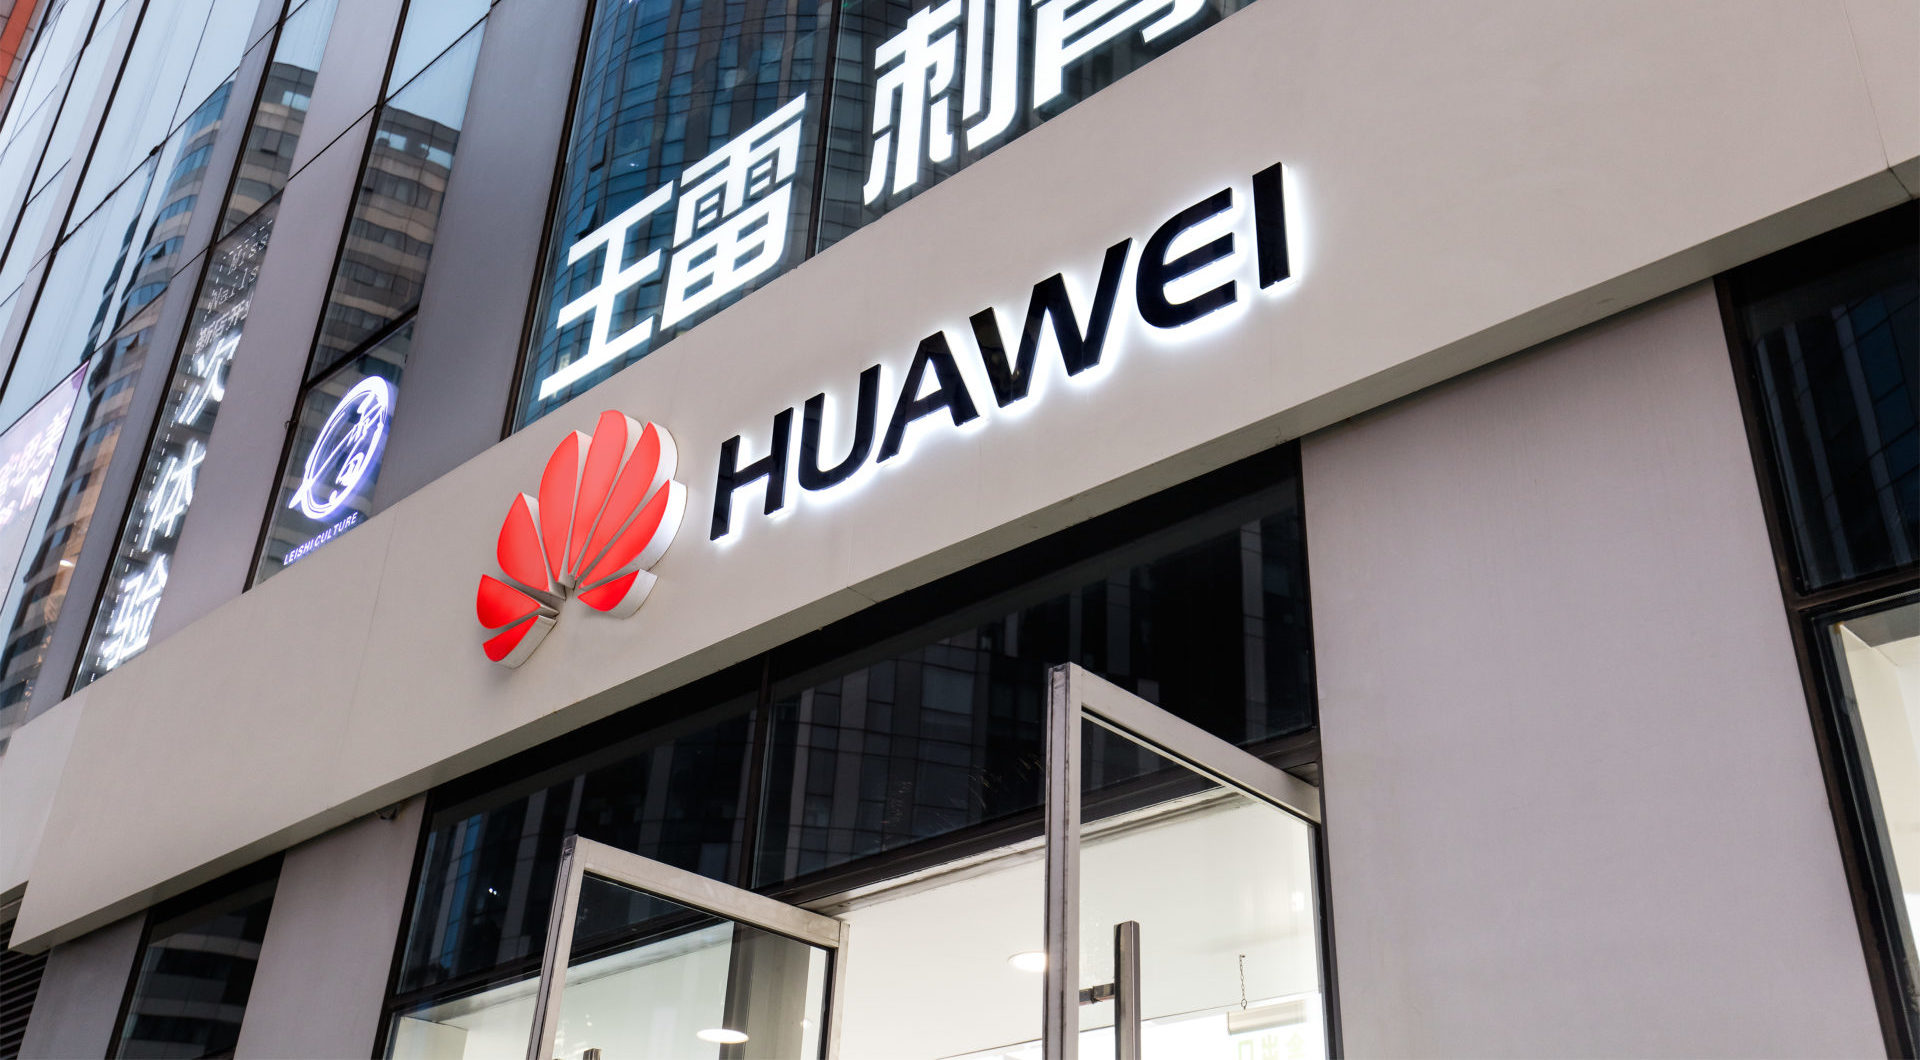 """Huawei security risk: UK report finds """"serious vulnerabilities"""" in 5G tech"""